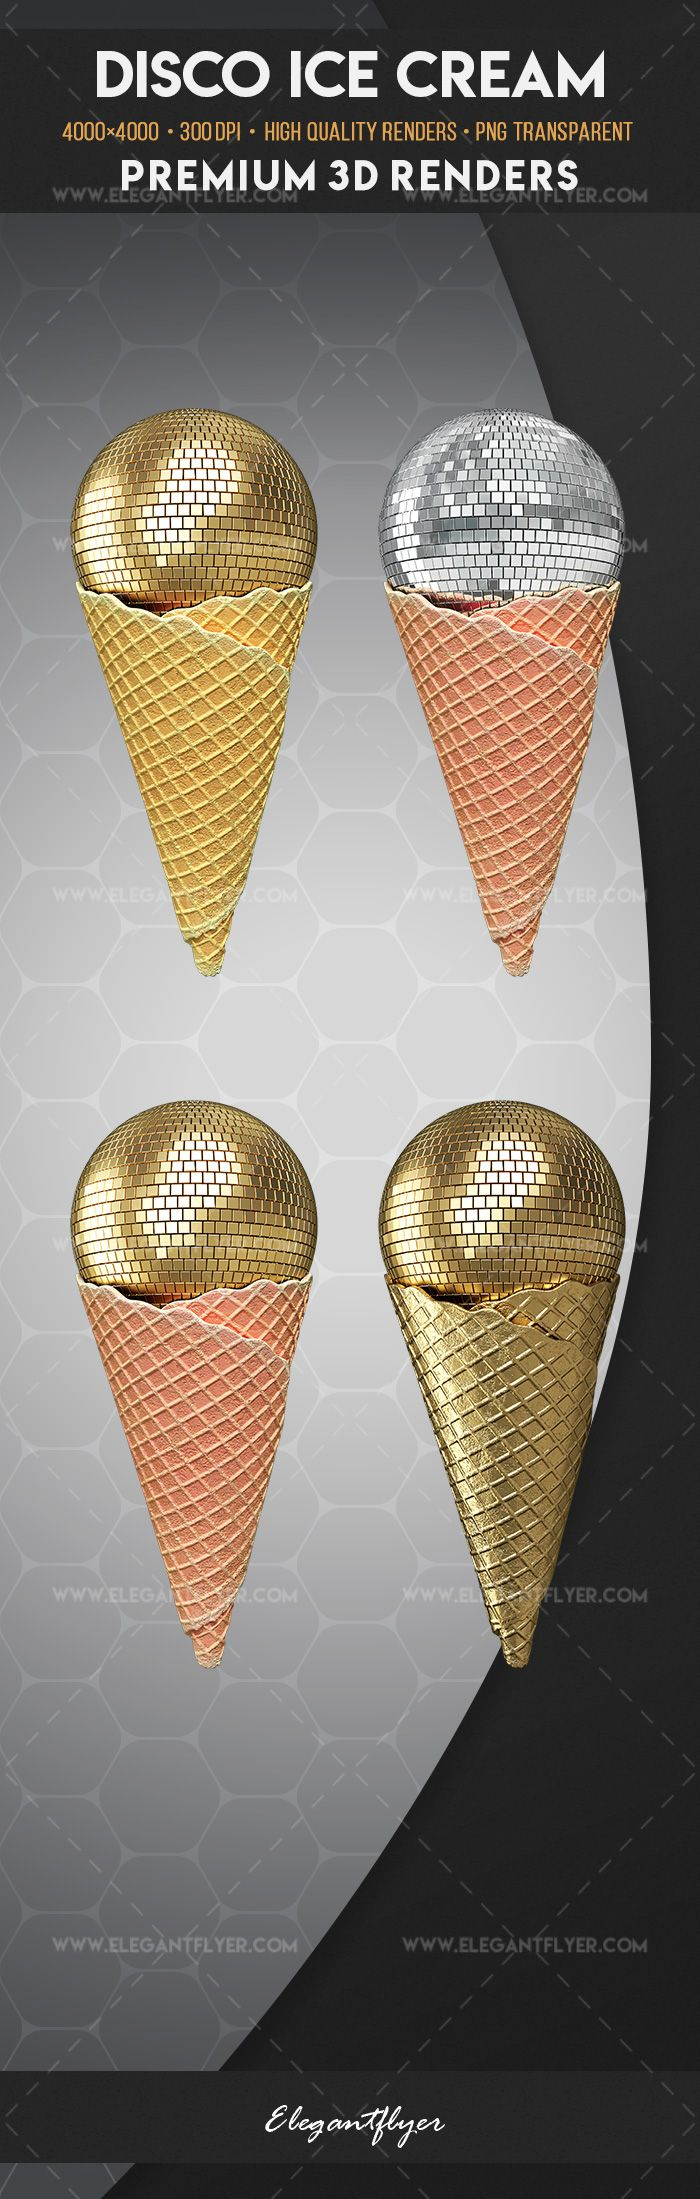 Disco Ice Cream – Premium 3d Render Templates